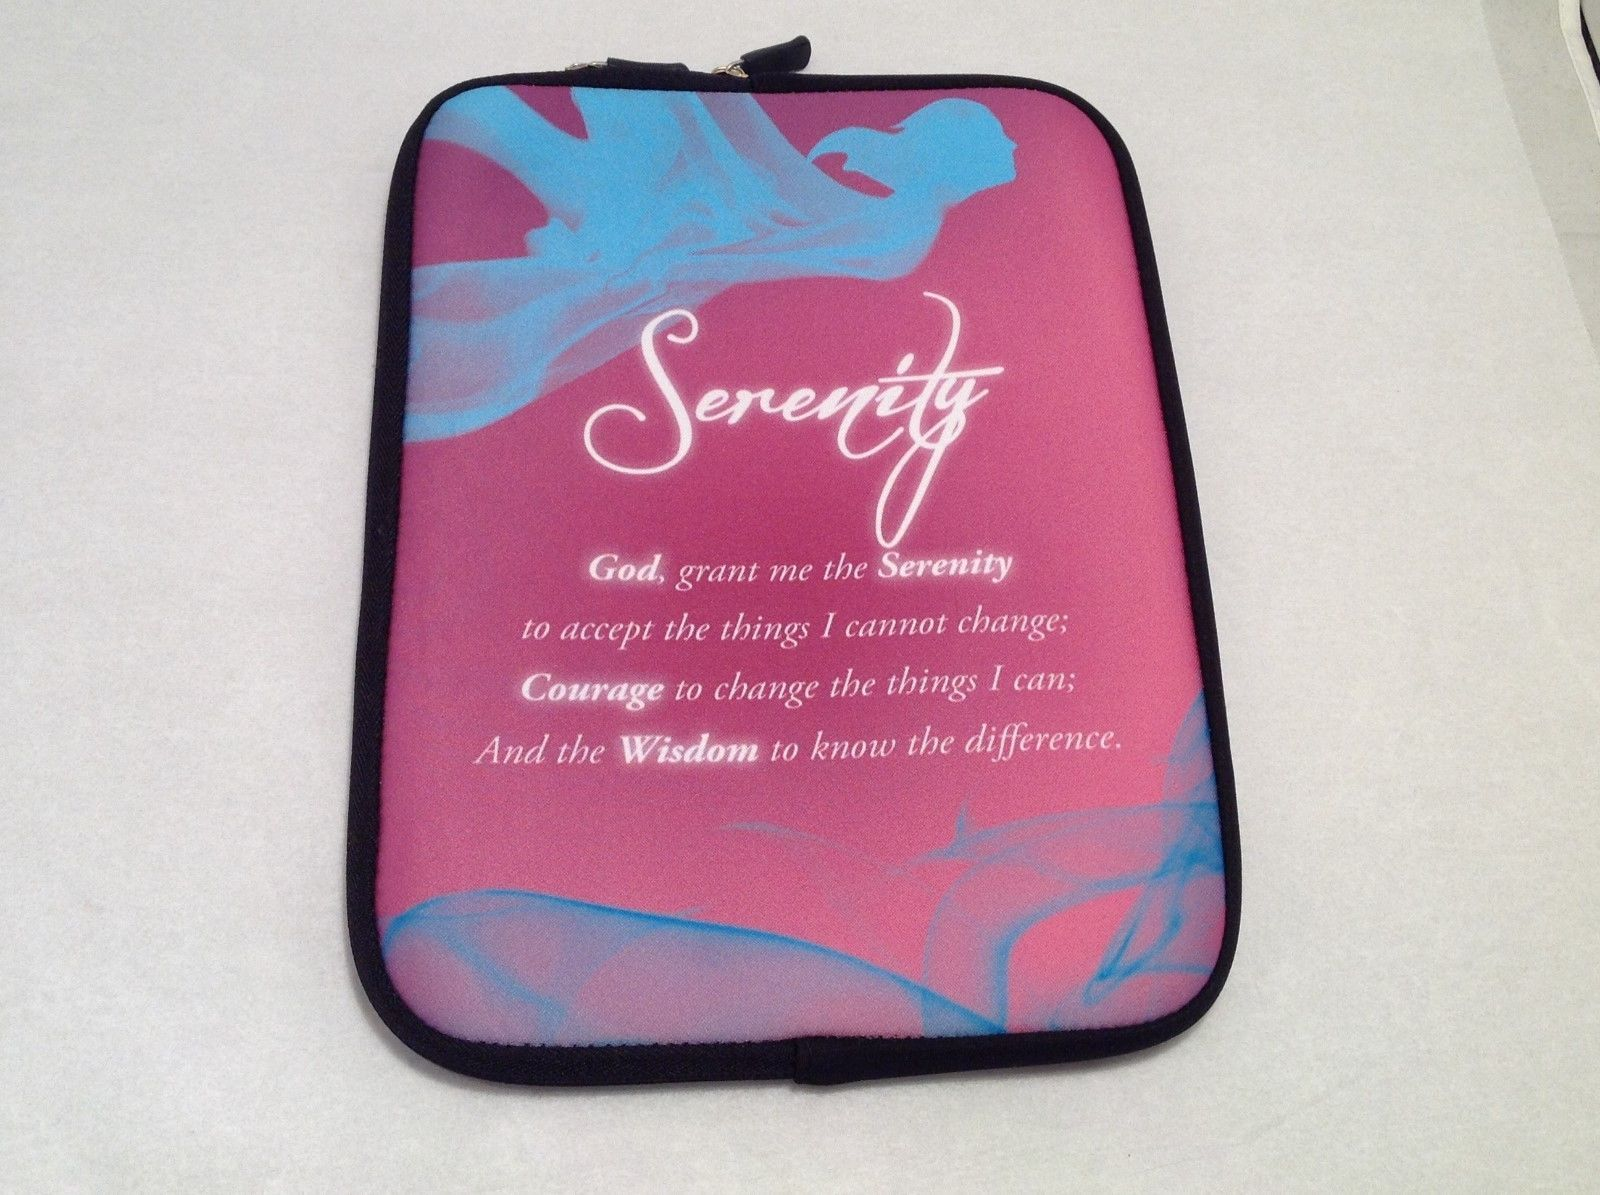 NEW Computer/Tablet Carrying Case w/ Serenity Prayer